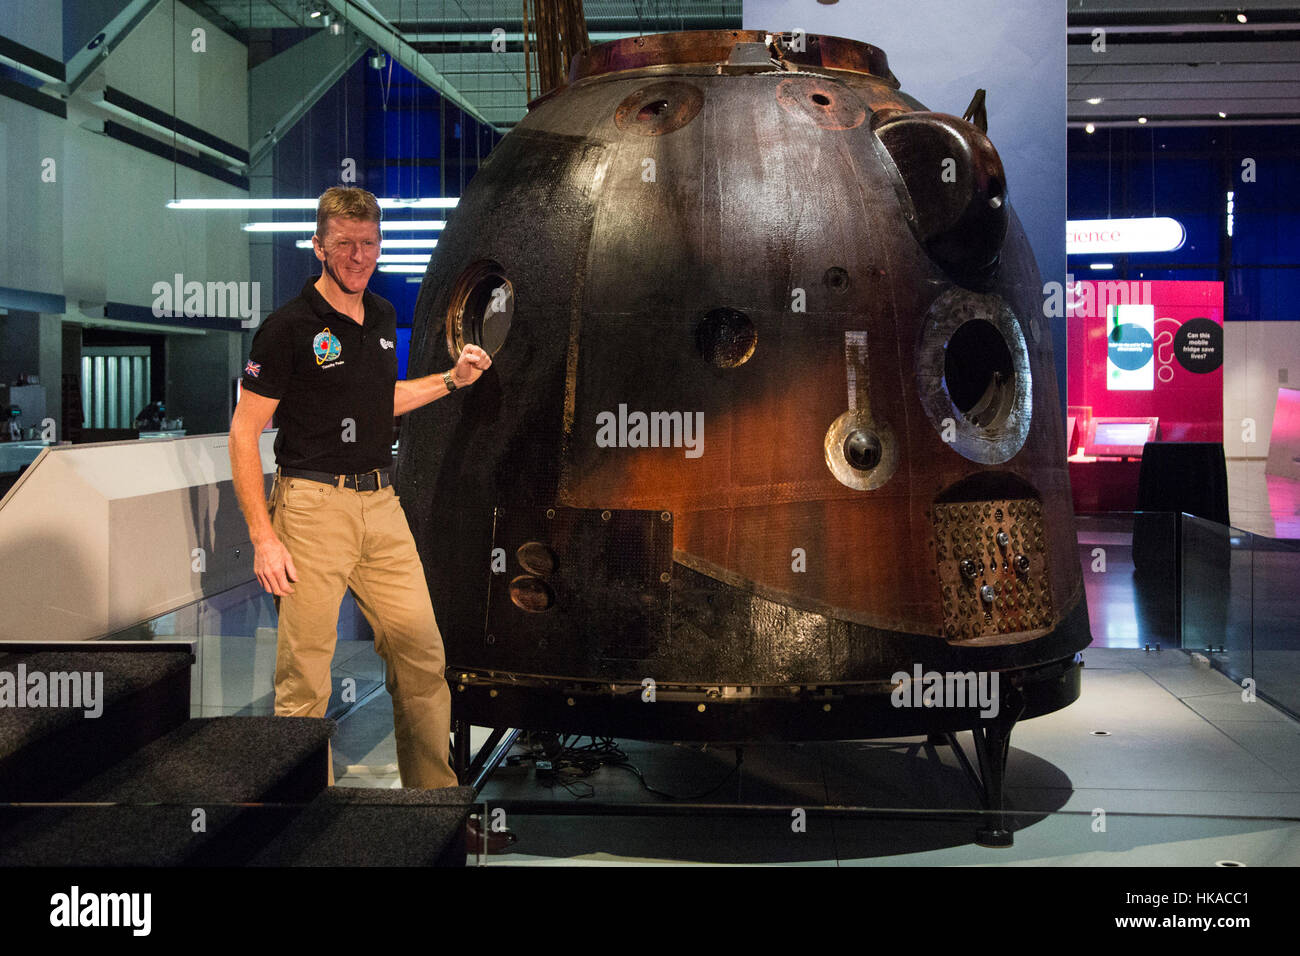 London, UK. 26 January 2017. British astronaut Tim Peake poses with the spacecraft. The Science Museum unveils the - Stock Image